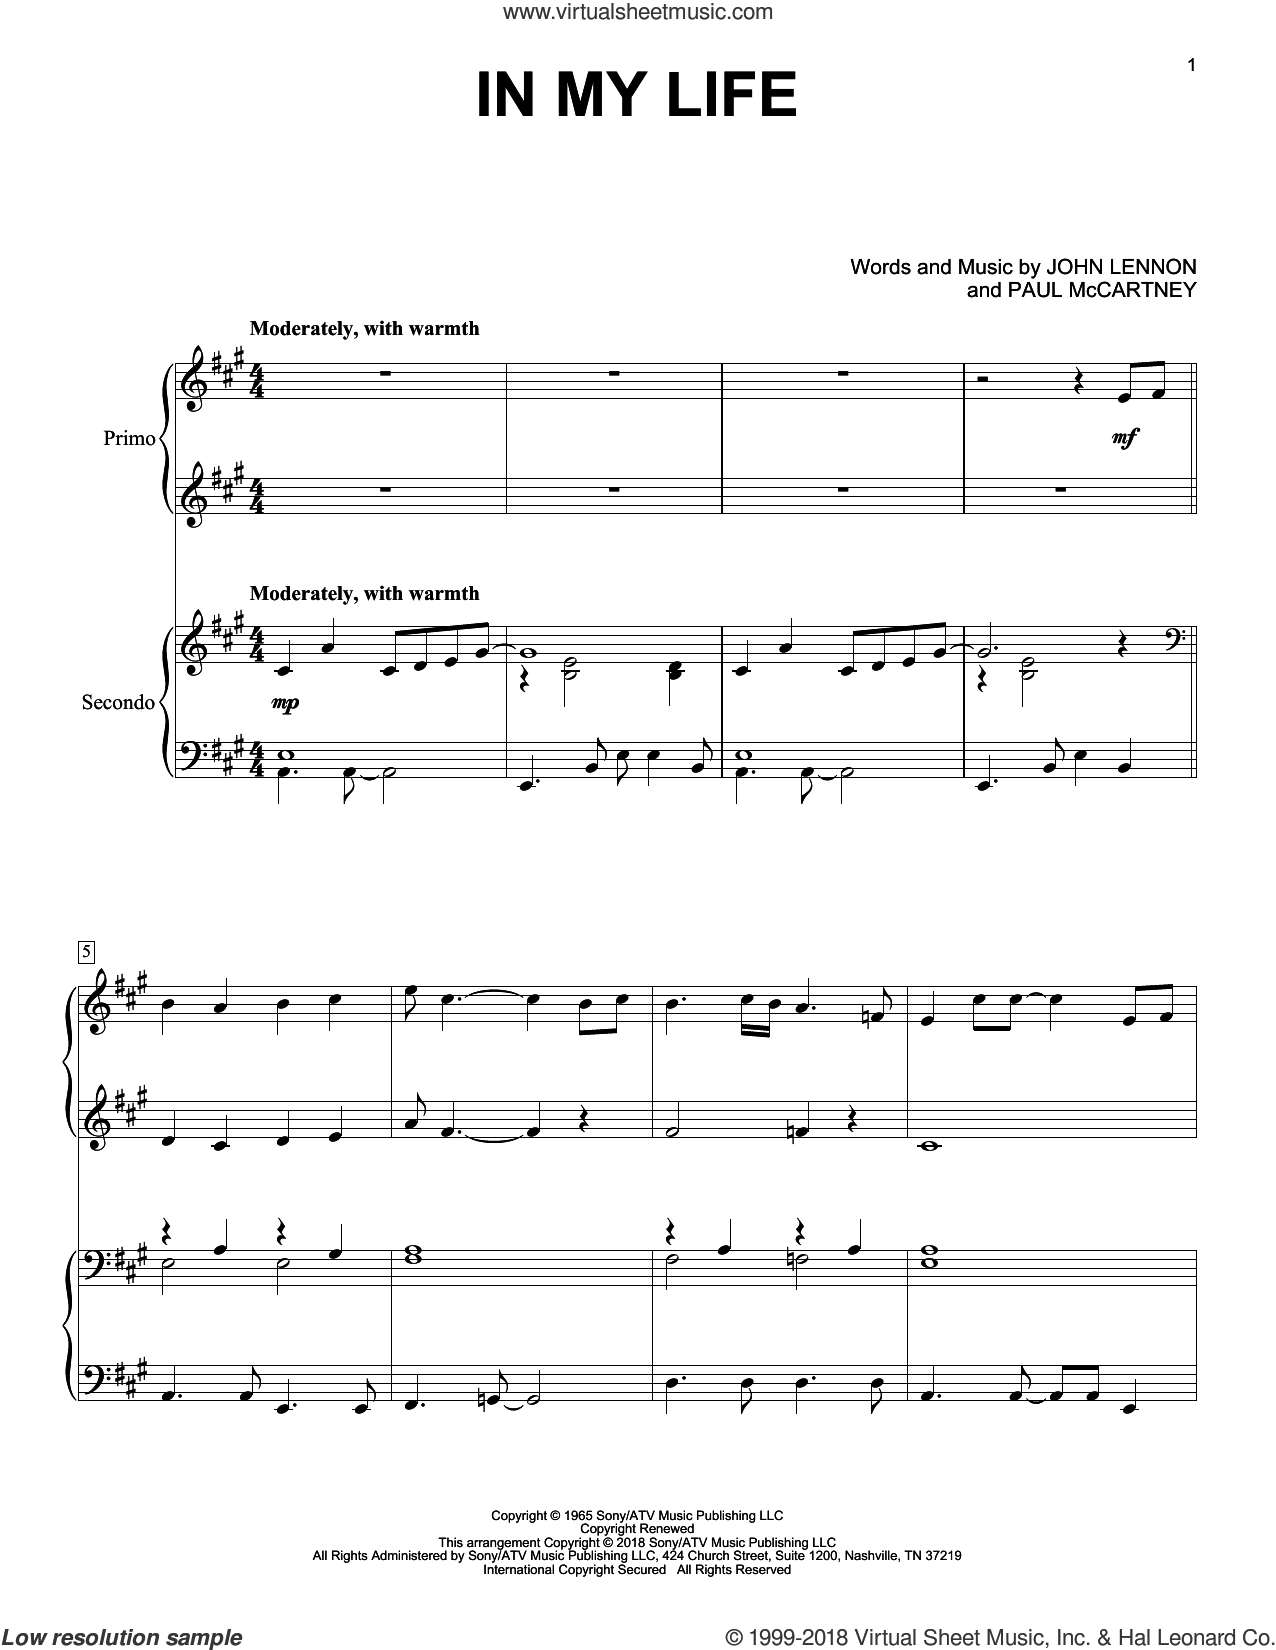 In My Life sheet music for piano four hands by The Beatles, Eric Baumgartner, John Lennon and Paul McCartney, intermediate skill level